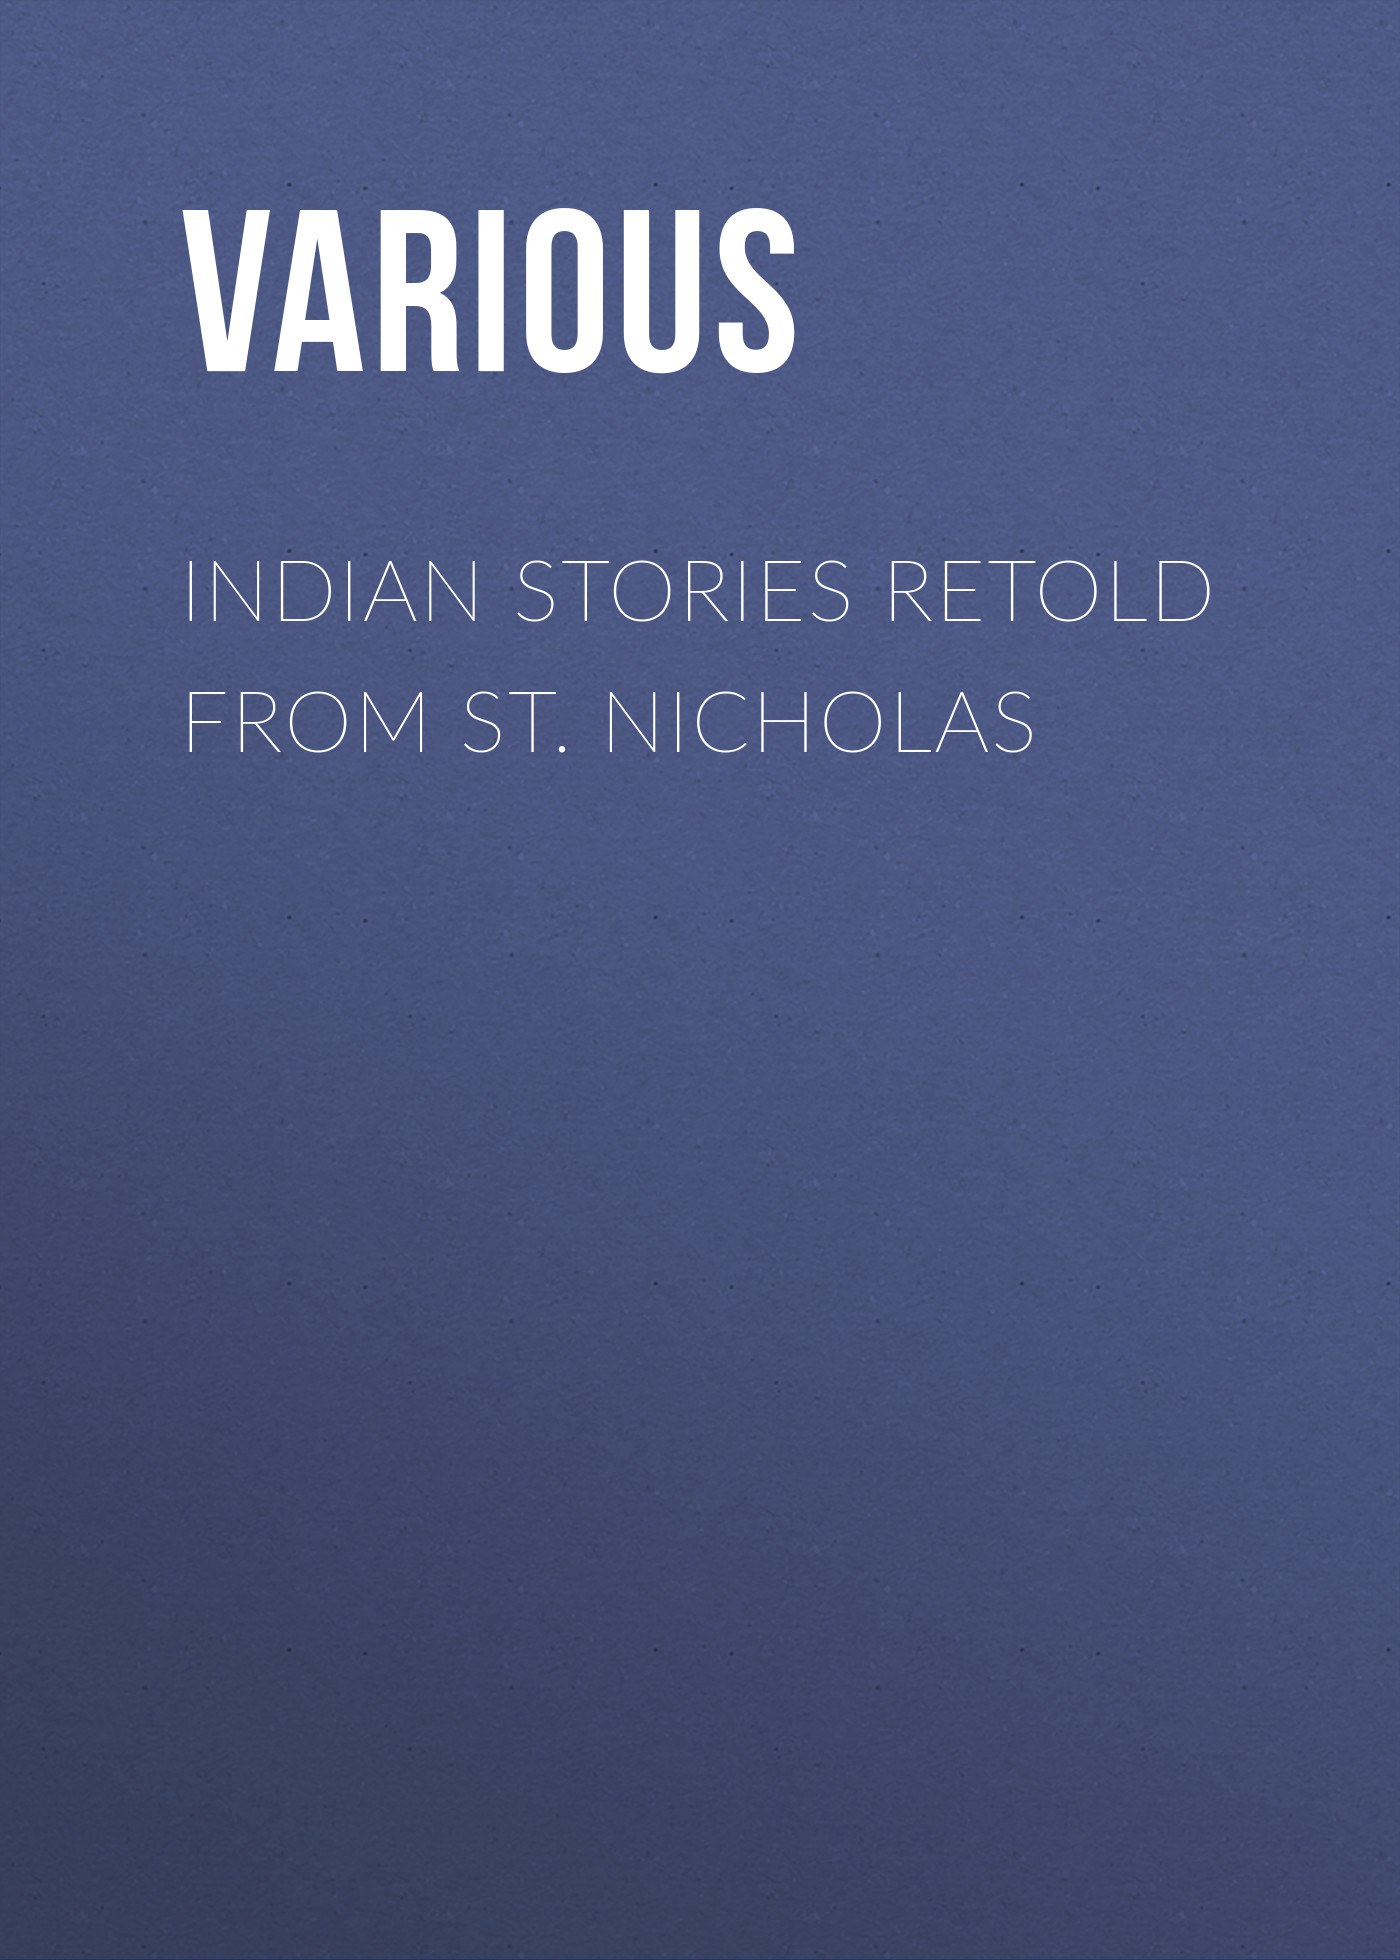 цены Various Indian Stories Retold From St. Nicholas